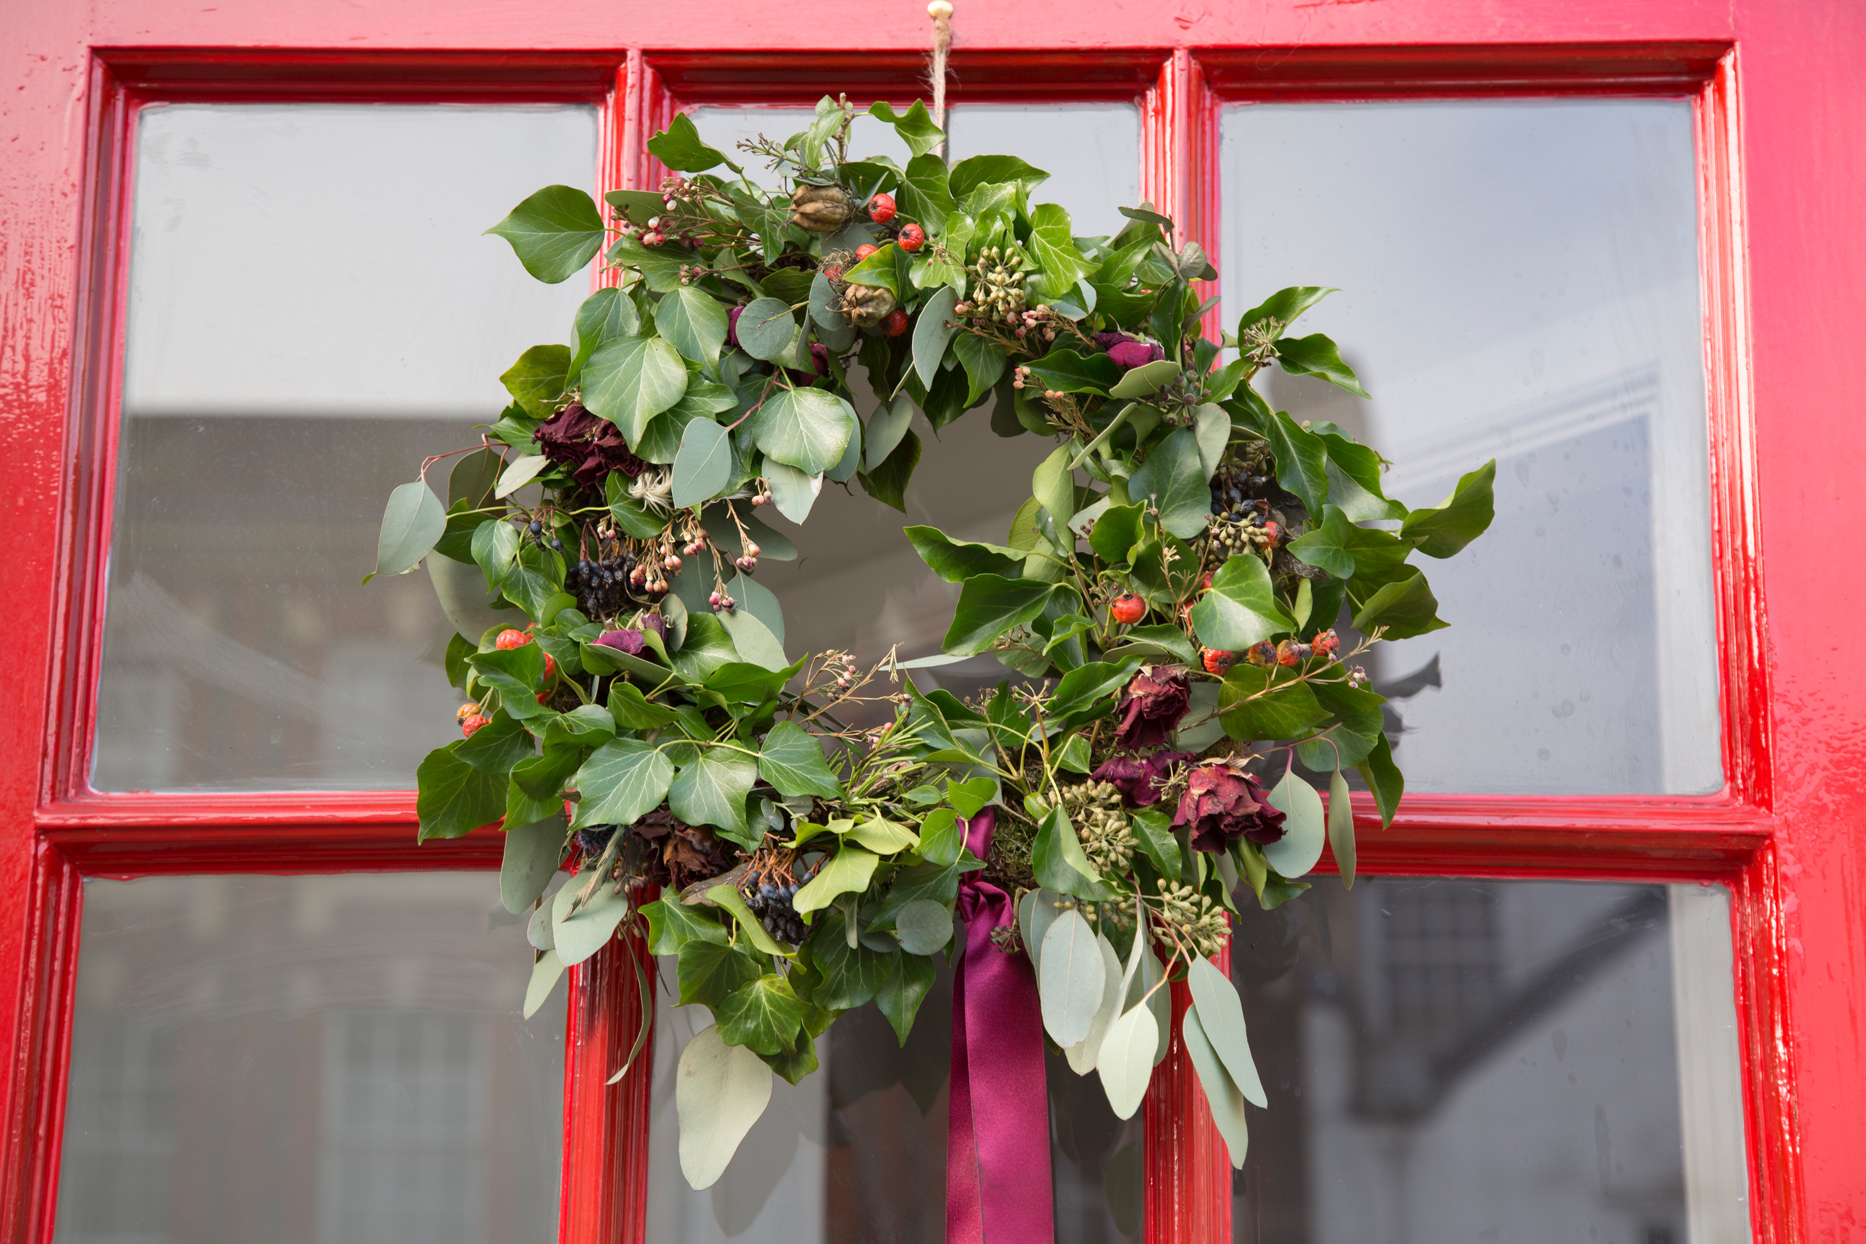 green wreath with berries and floral accents hanging on red door